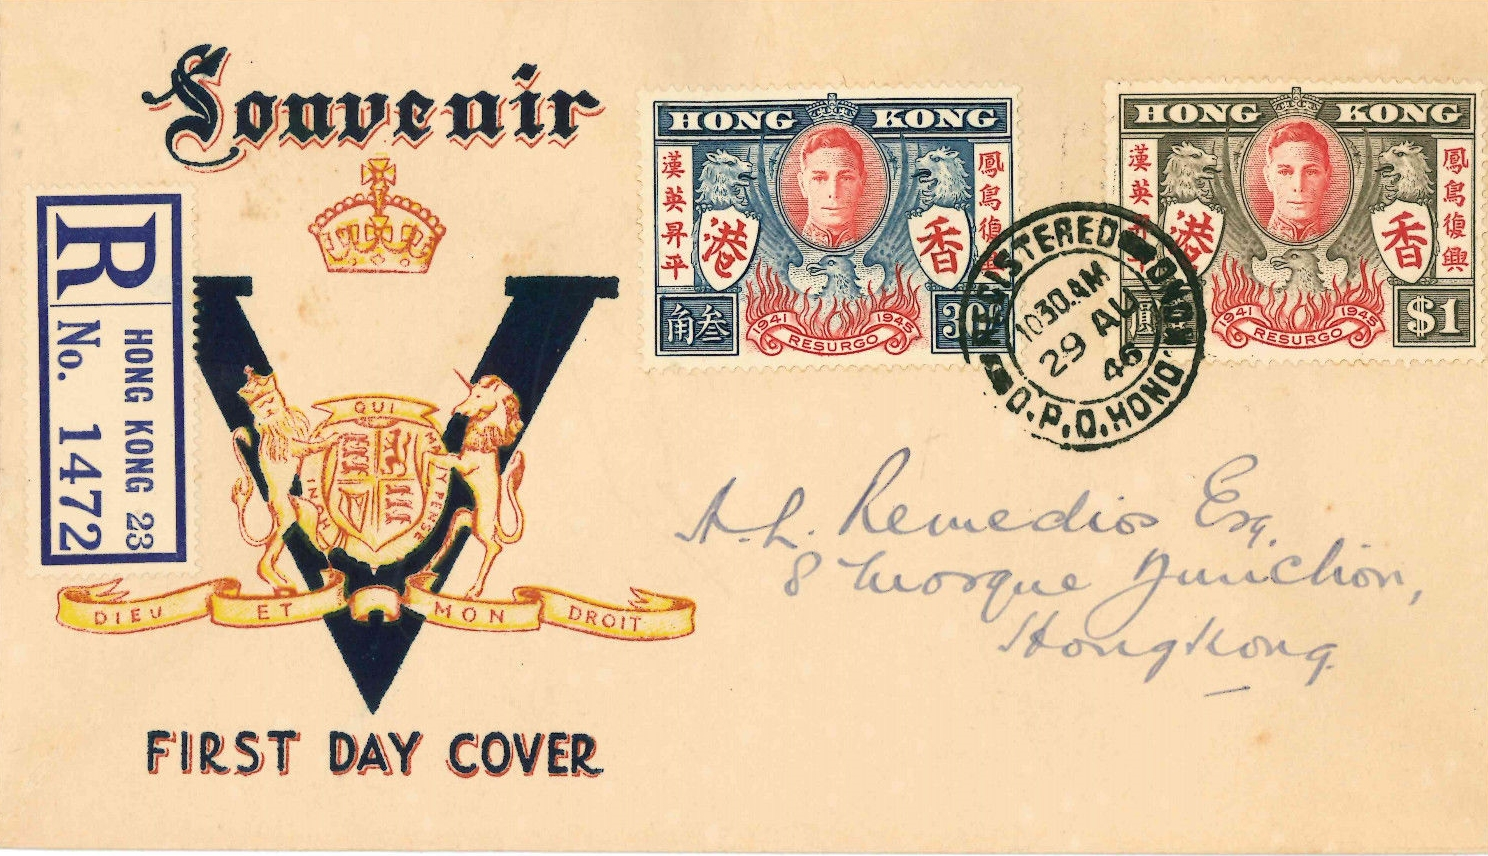 Hong Kong - Scott #174-175 (1946) first day cover [NIMC2019] - image sourced from active eBay auction